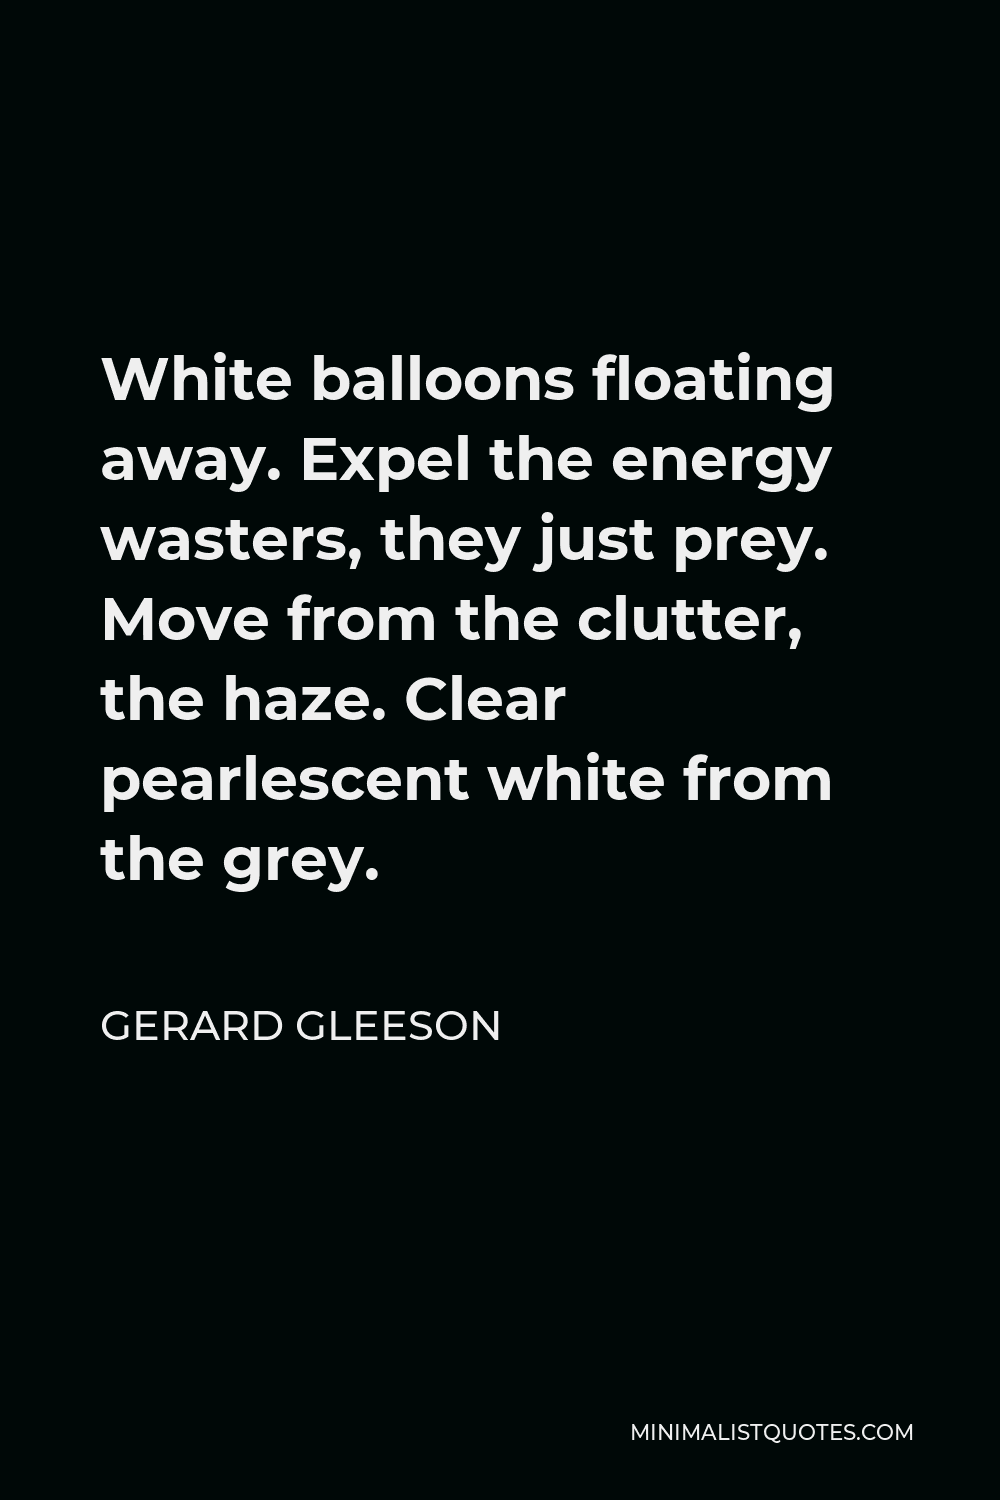 Gerard Gleeson Quote - White balloons floating away. Expel the energy wasters, they just prey. Move from the clutter, the haze. Clear pearlescent white from the grey.